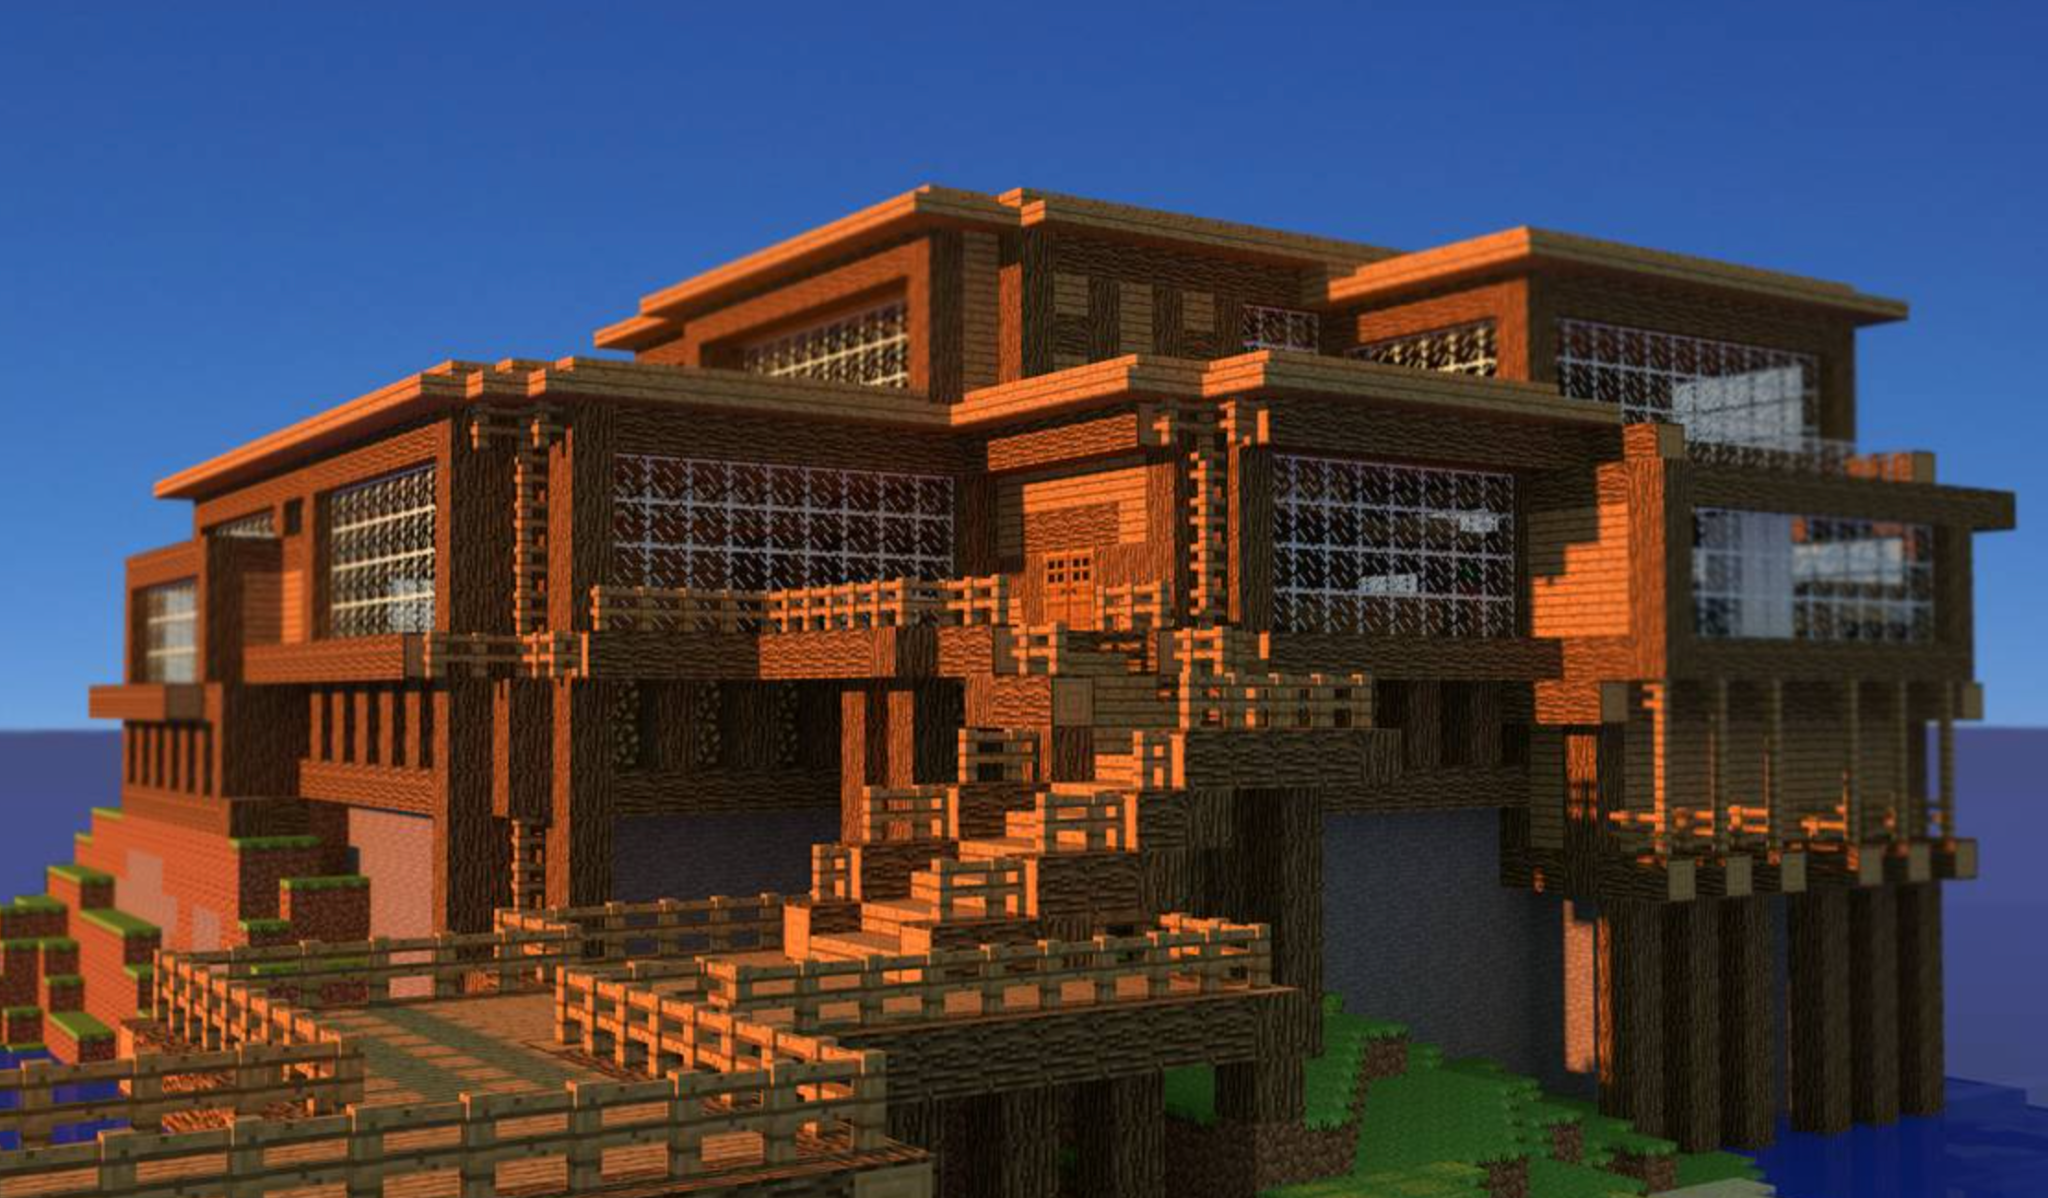 Come together with fellow Minecraft enthusiasts to create the mansion of your wildest dreams!